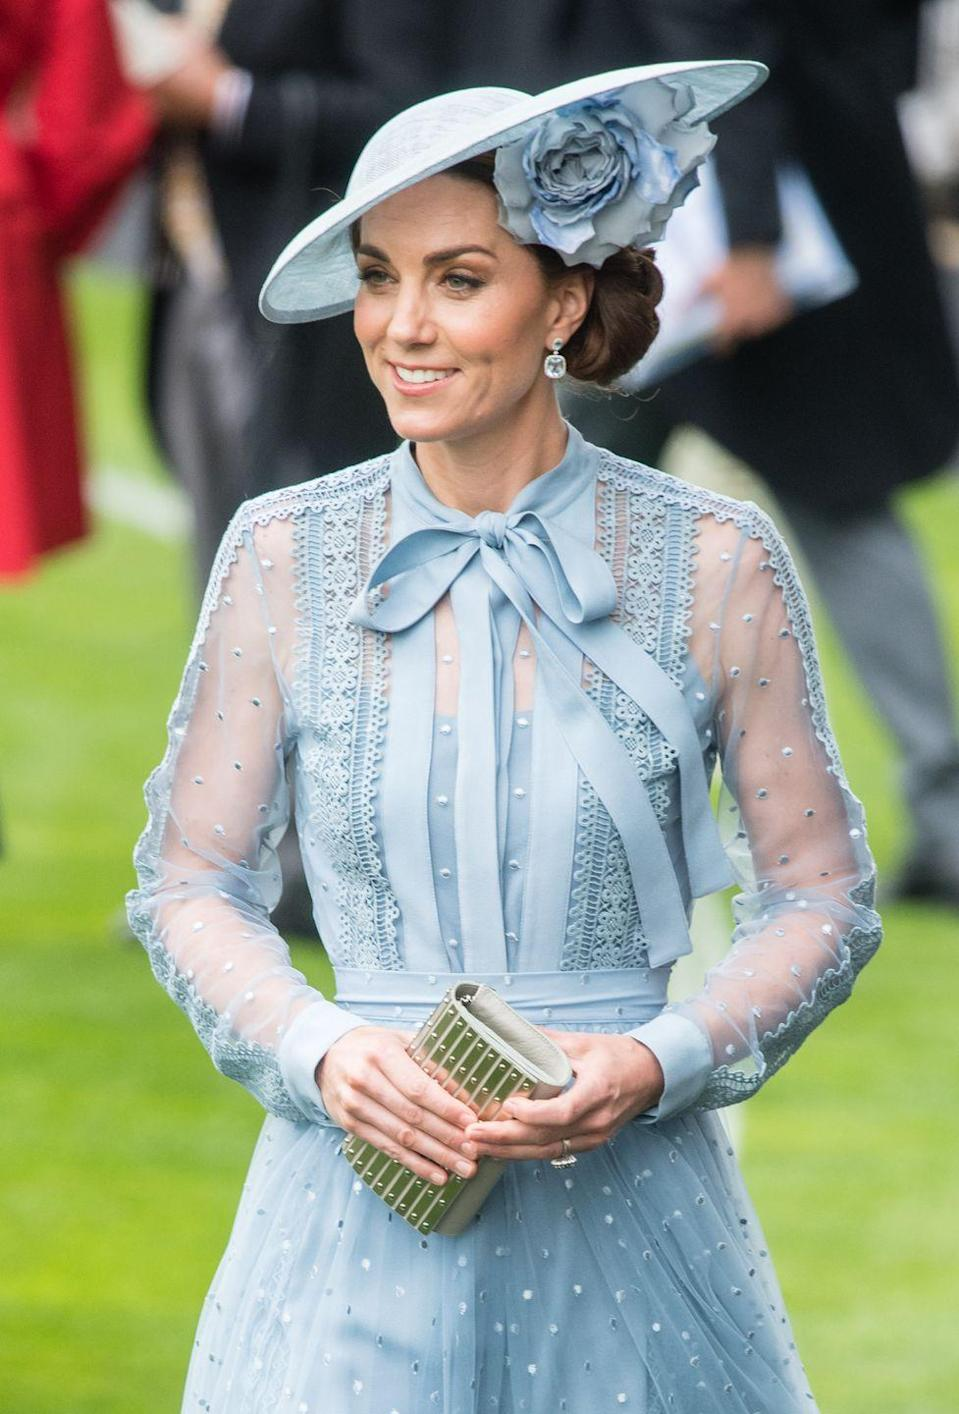 "<p>Kate showed the Royal Ascot crowd how it's done when she arrived at the racecourse sporting <a href=""https://www.townandcountrymag.com/style/fashion-trends/a28072096/kate-middleton-elie-saab-blue-dress-royal-ascot-day-1-2019/"" rel=""nofollow noopener"" target=""_blank"" data-ylk=""slk:a statement hat by Philip Treacy"" class=""link rapid-noclick-resp"">a statement hat by Philip Treacy</a>, which featured a stunning floral adornment.<br></p>"